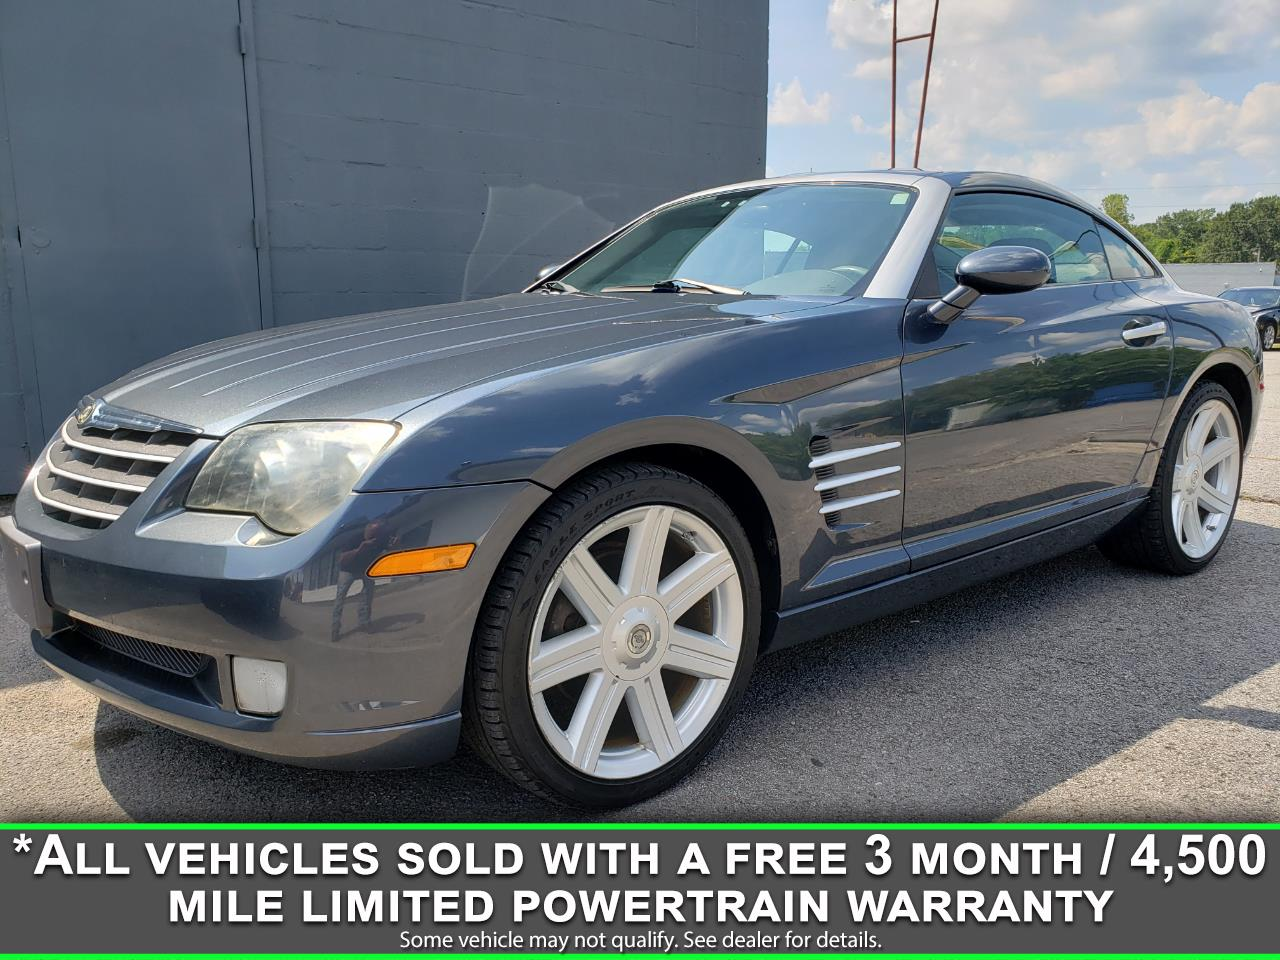 2007 Chrysler Crossfire 2dr Cpe Limited